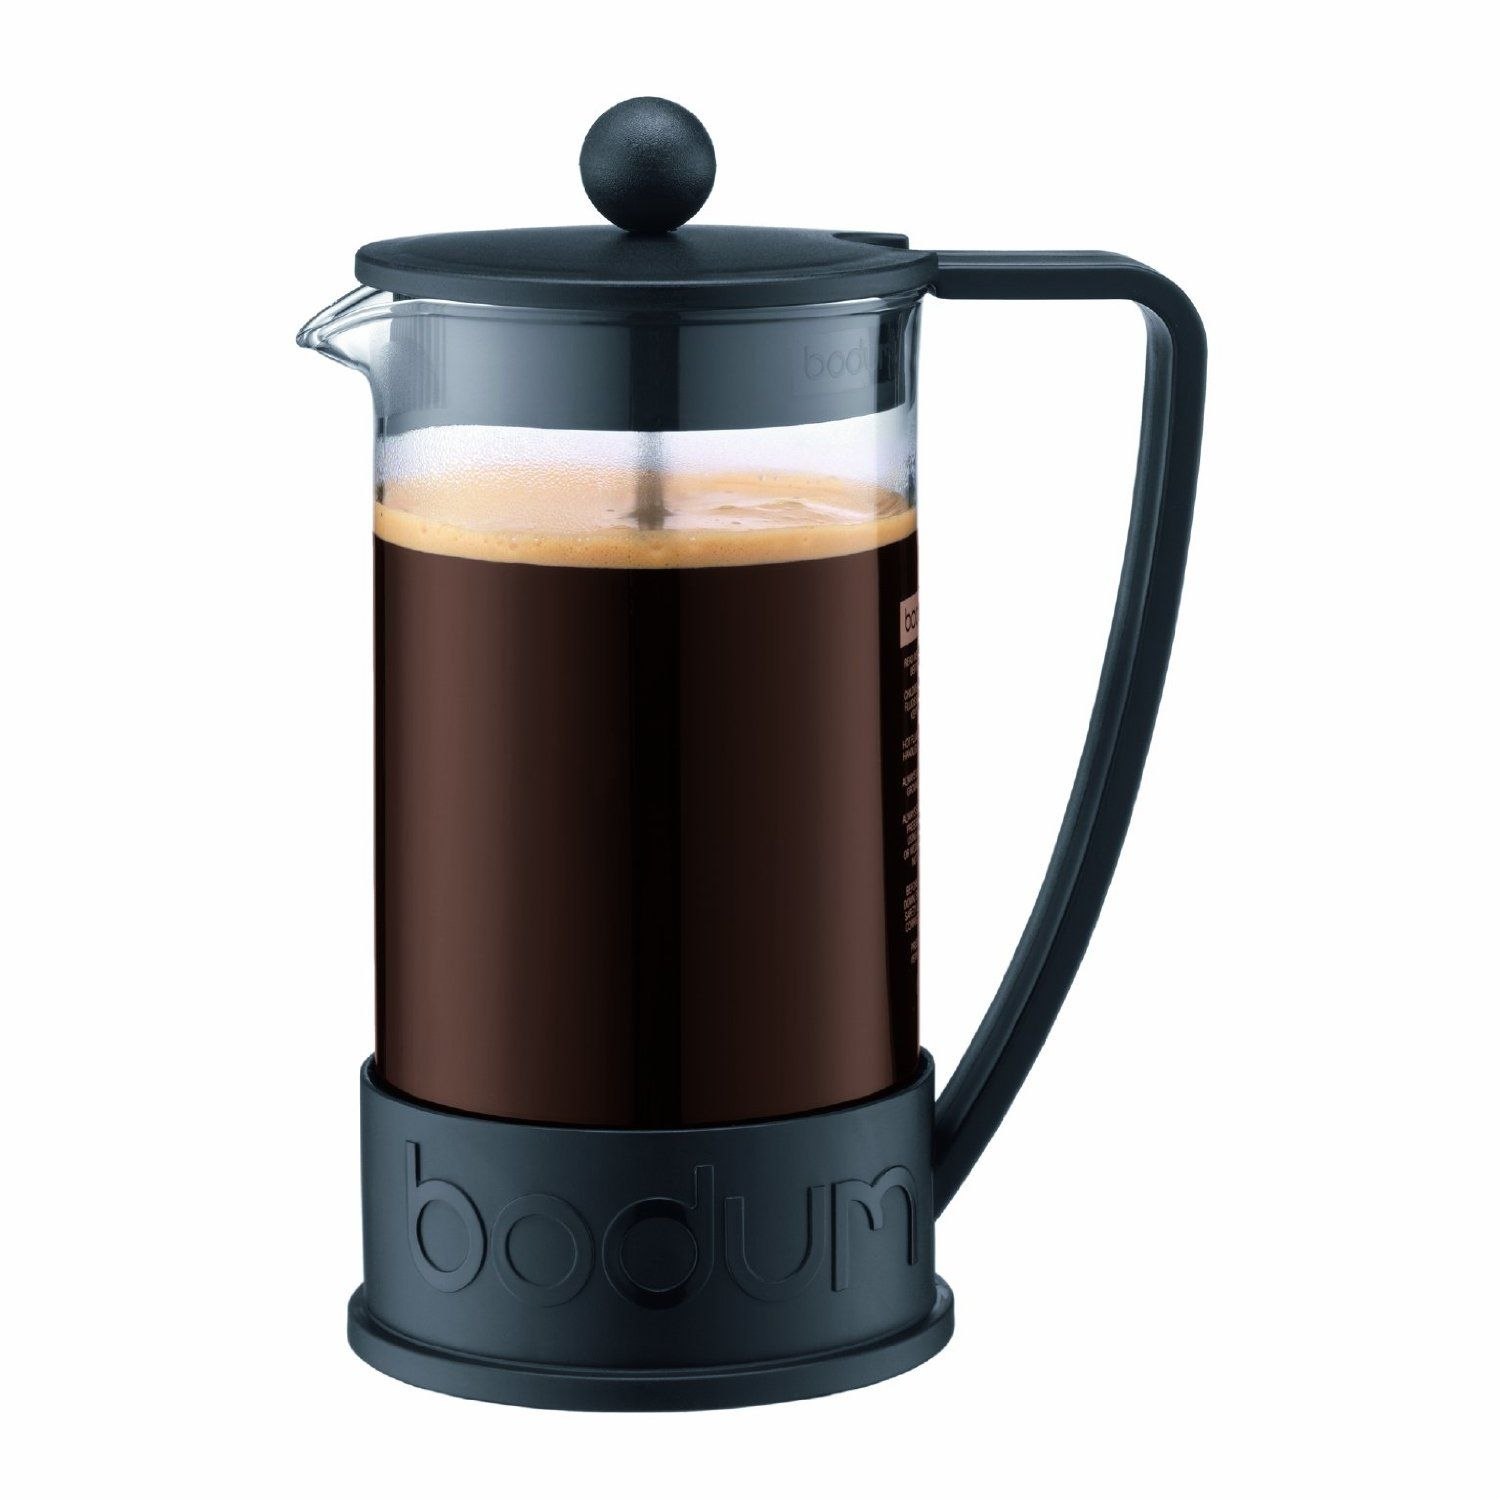 Bodum Brazil French Press 8 Cup Coffee Maker